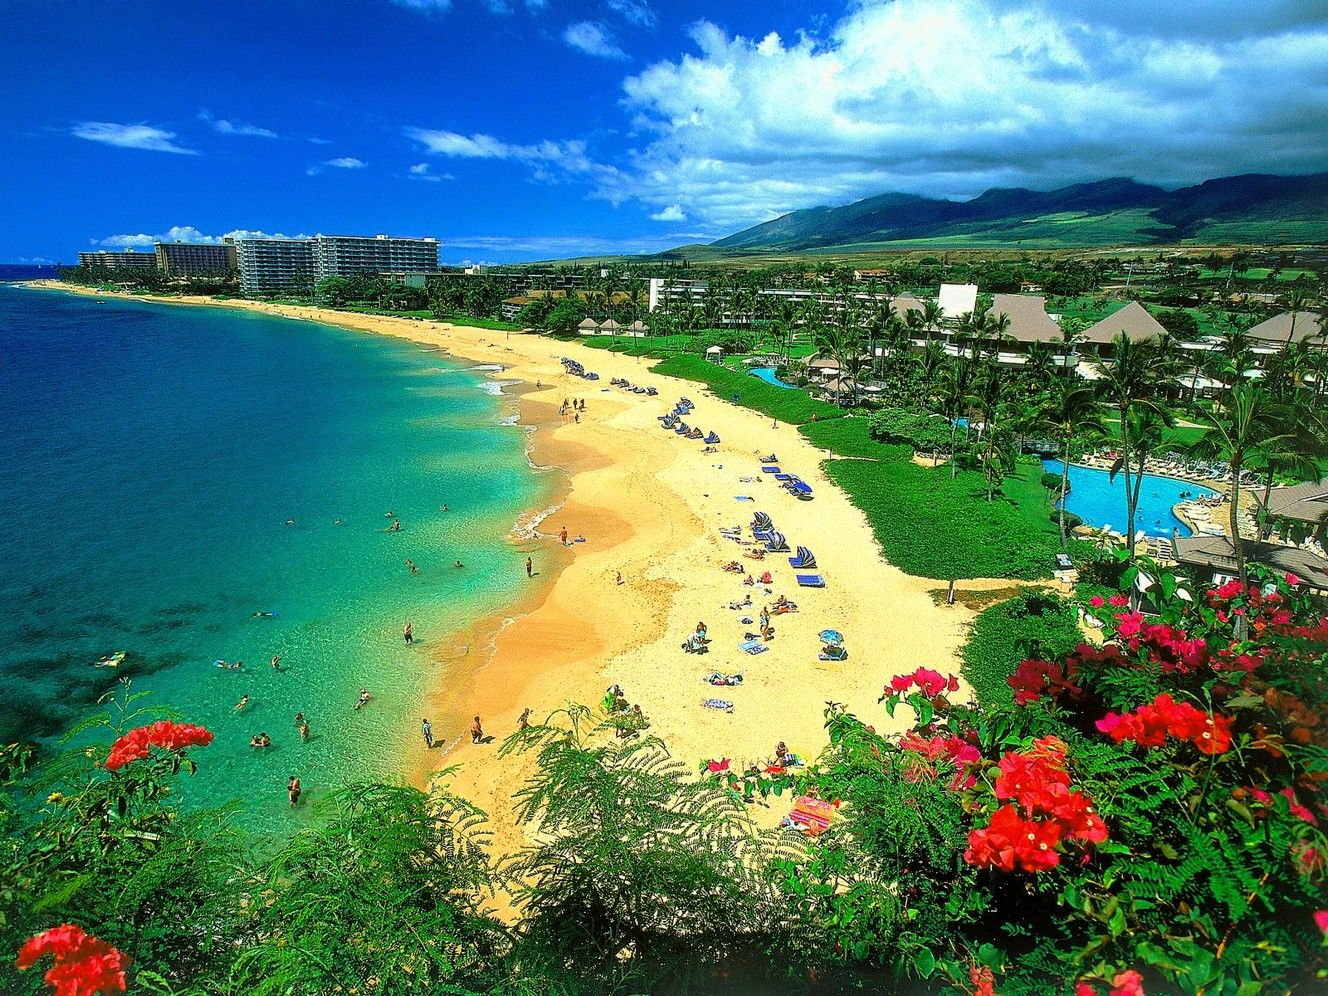 Hawaii Spend Some Moments Amidst The Natural Beauty